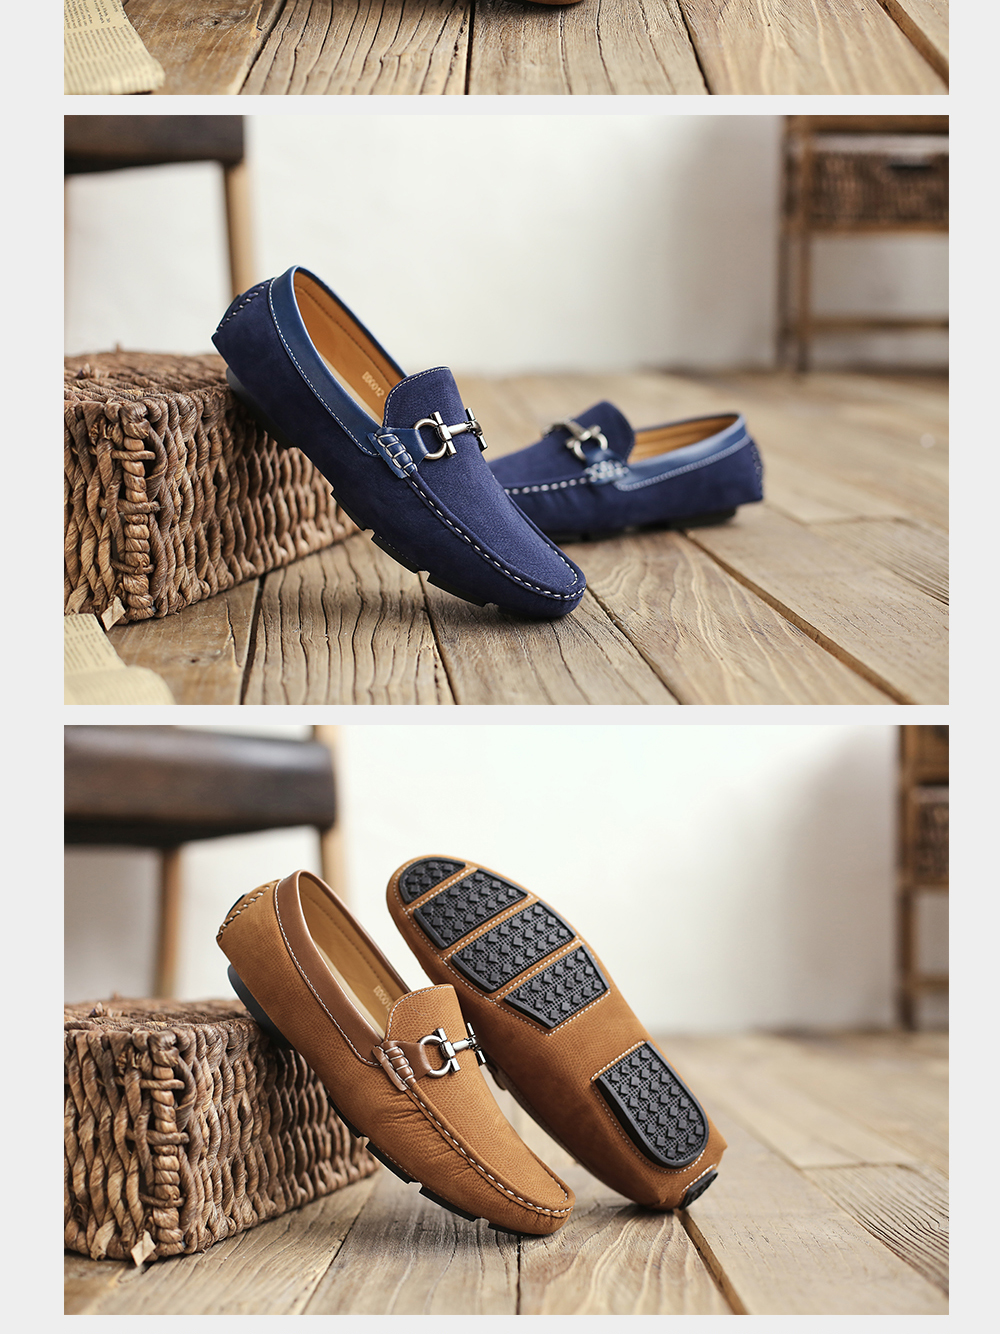 Men Shoes 2020 New Fashion Comfy Boat Man Footwear Brand Slip On Moccasin Driving Flats Shoes Popular design Men Casual Shoes